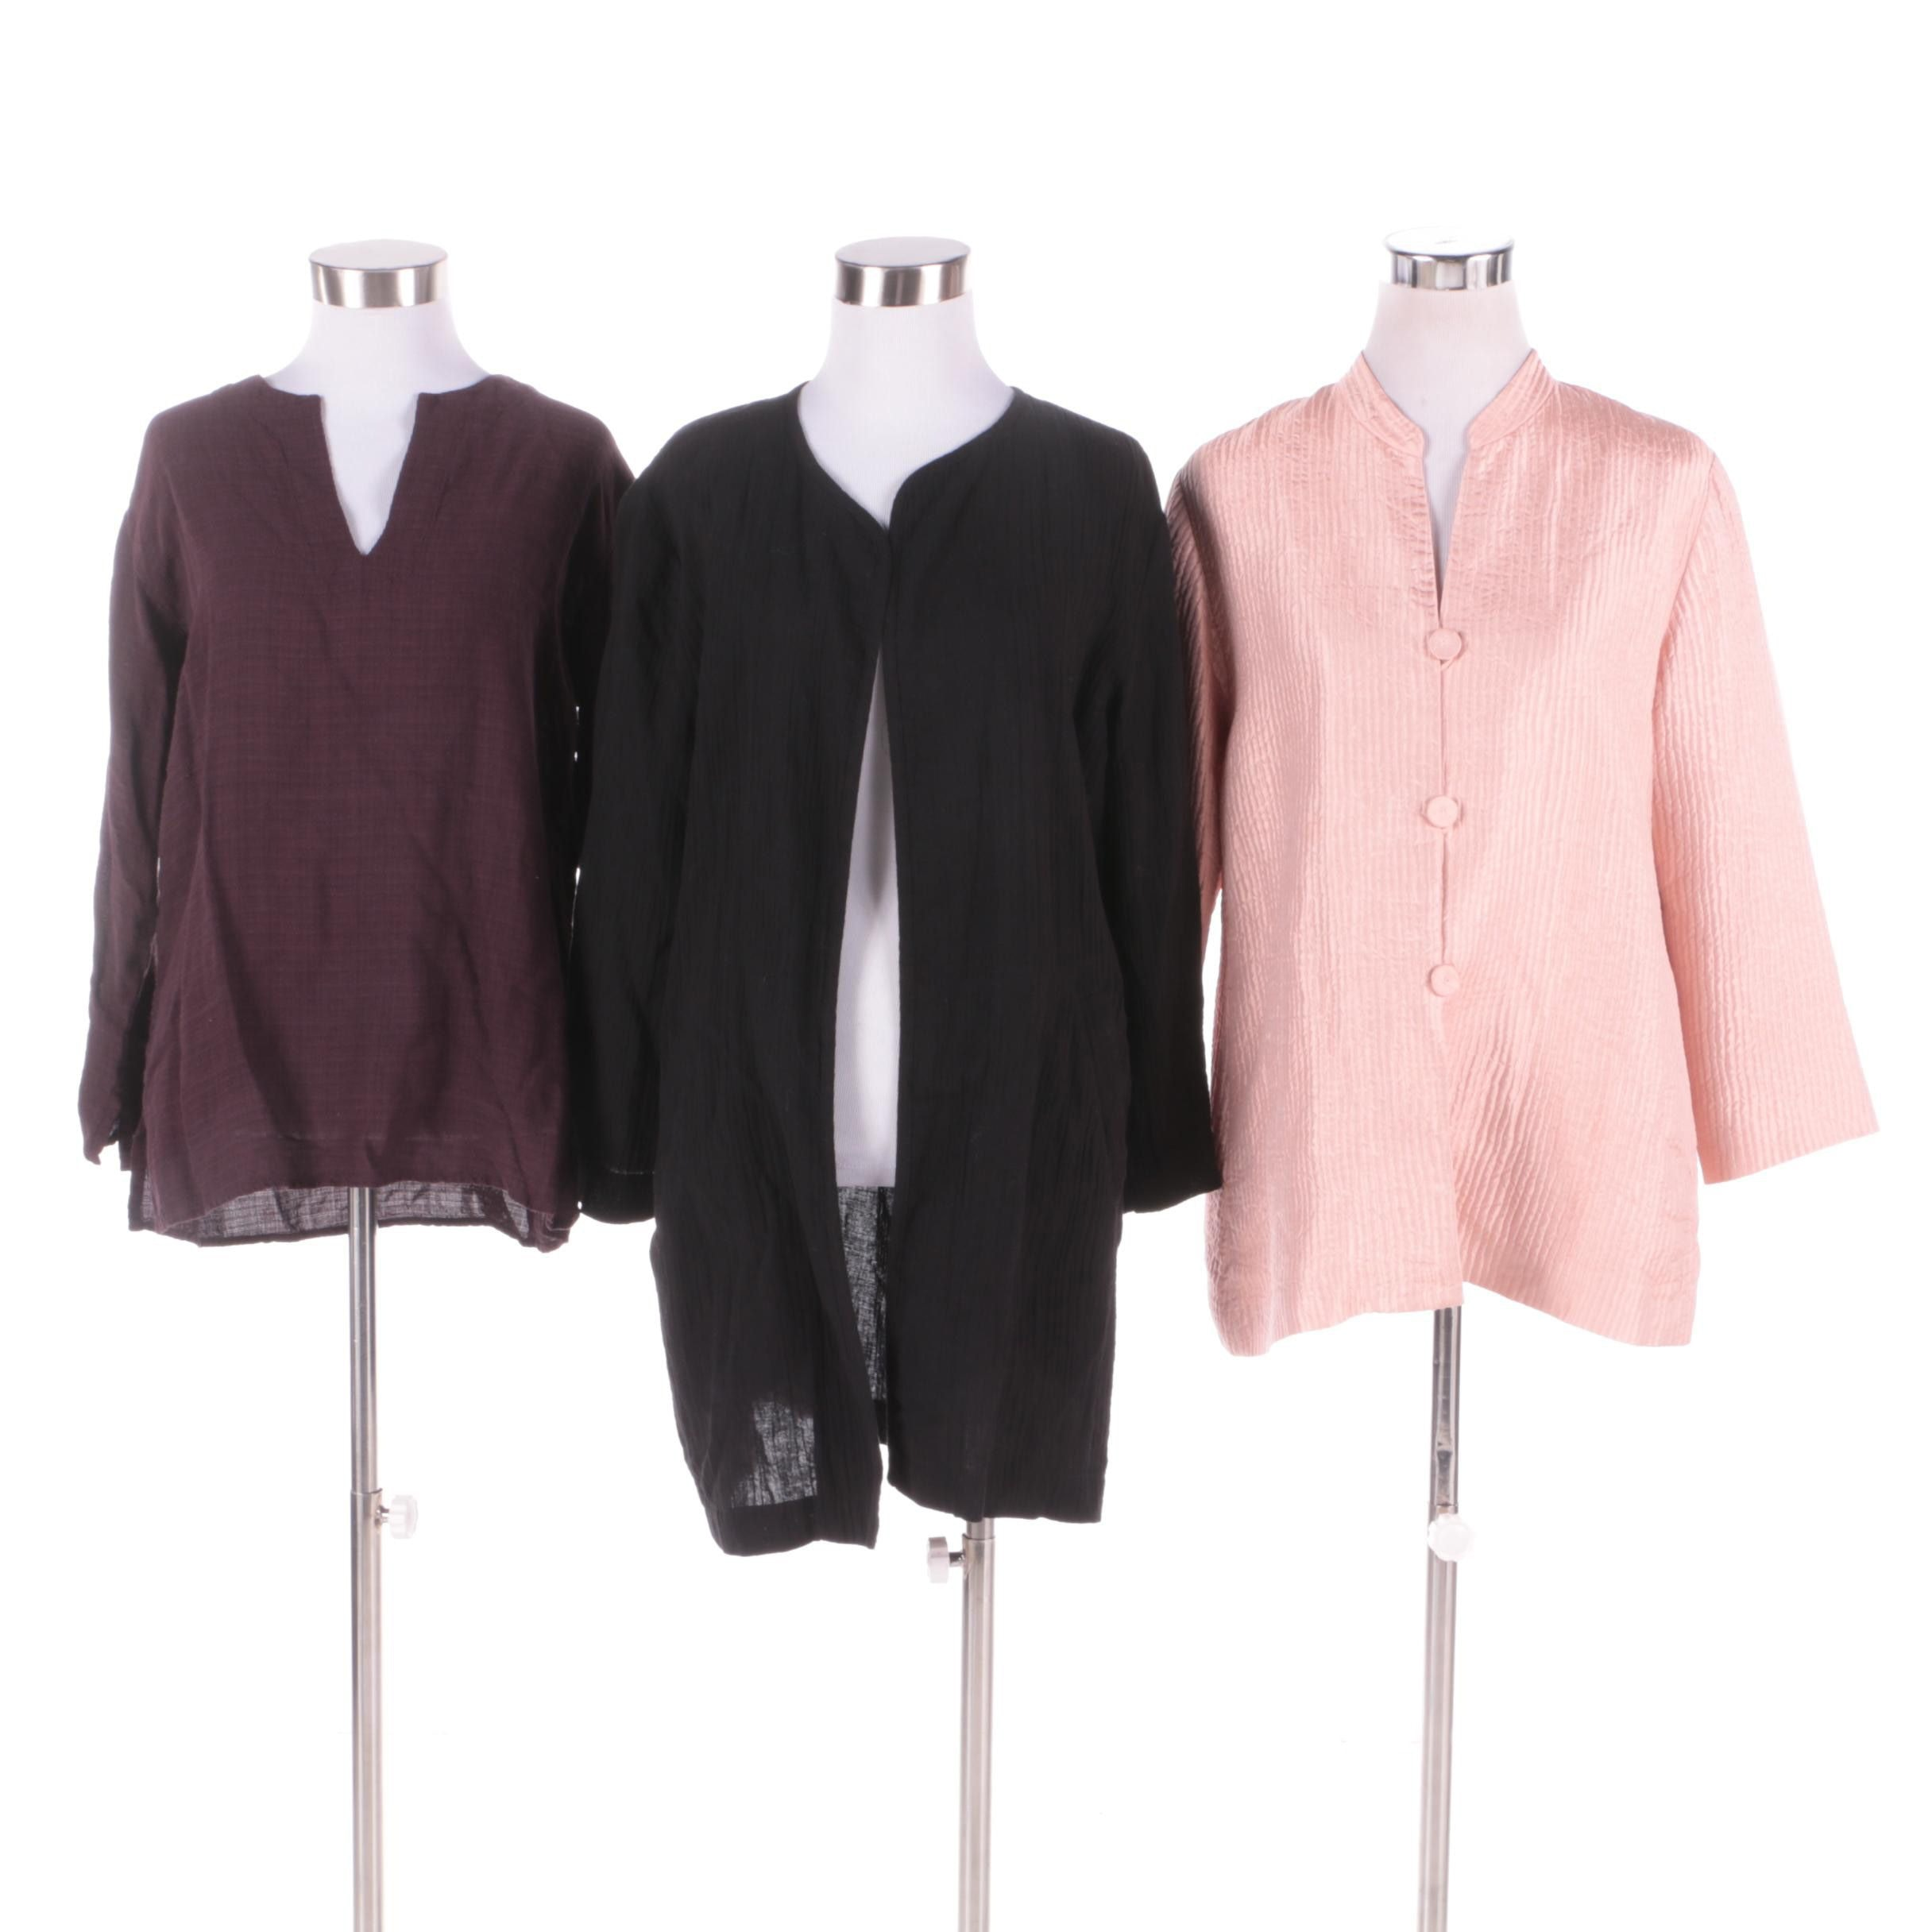 Eileen Fisher Lightweight Jackets and Top